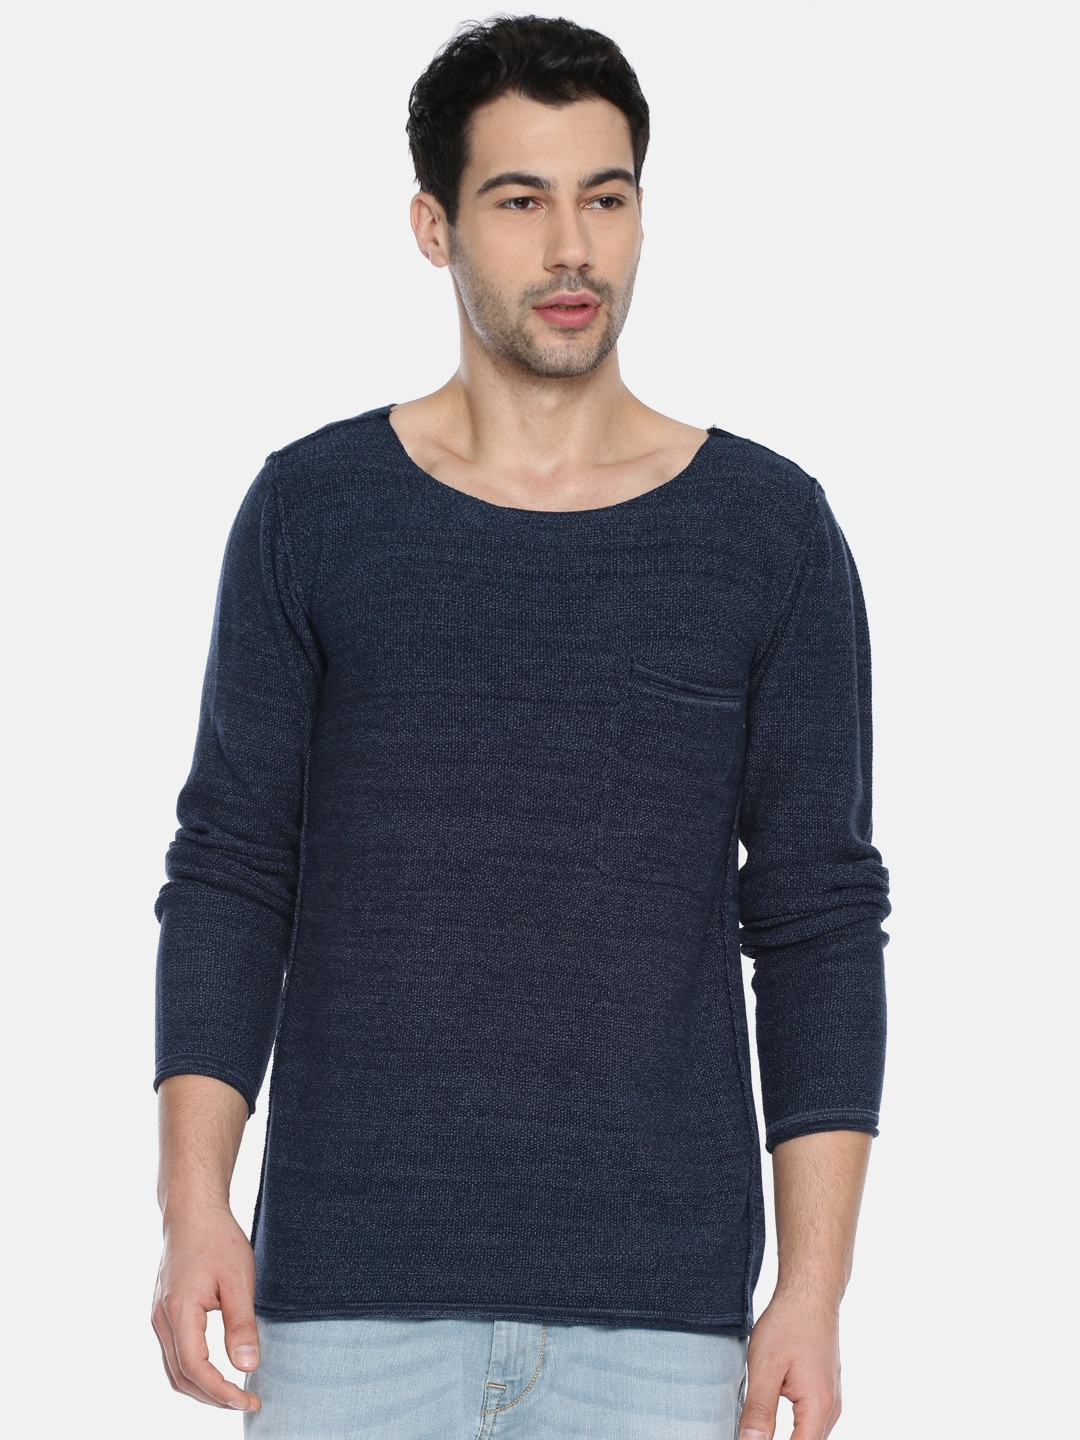 cc6dcfd9875c Sweaters for Men - Buy Mens Sweaters